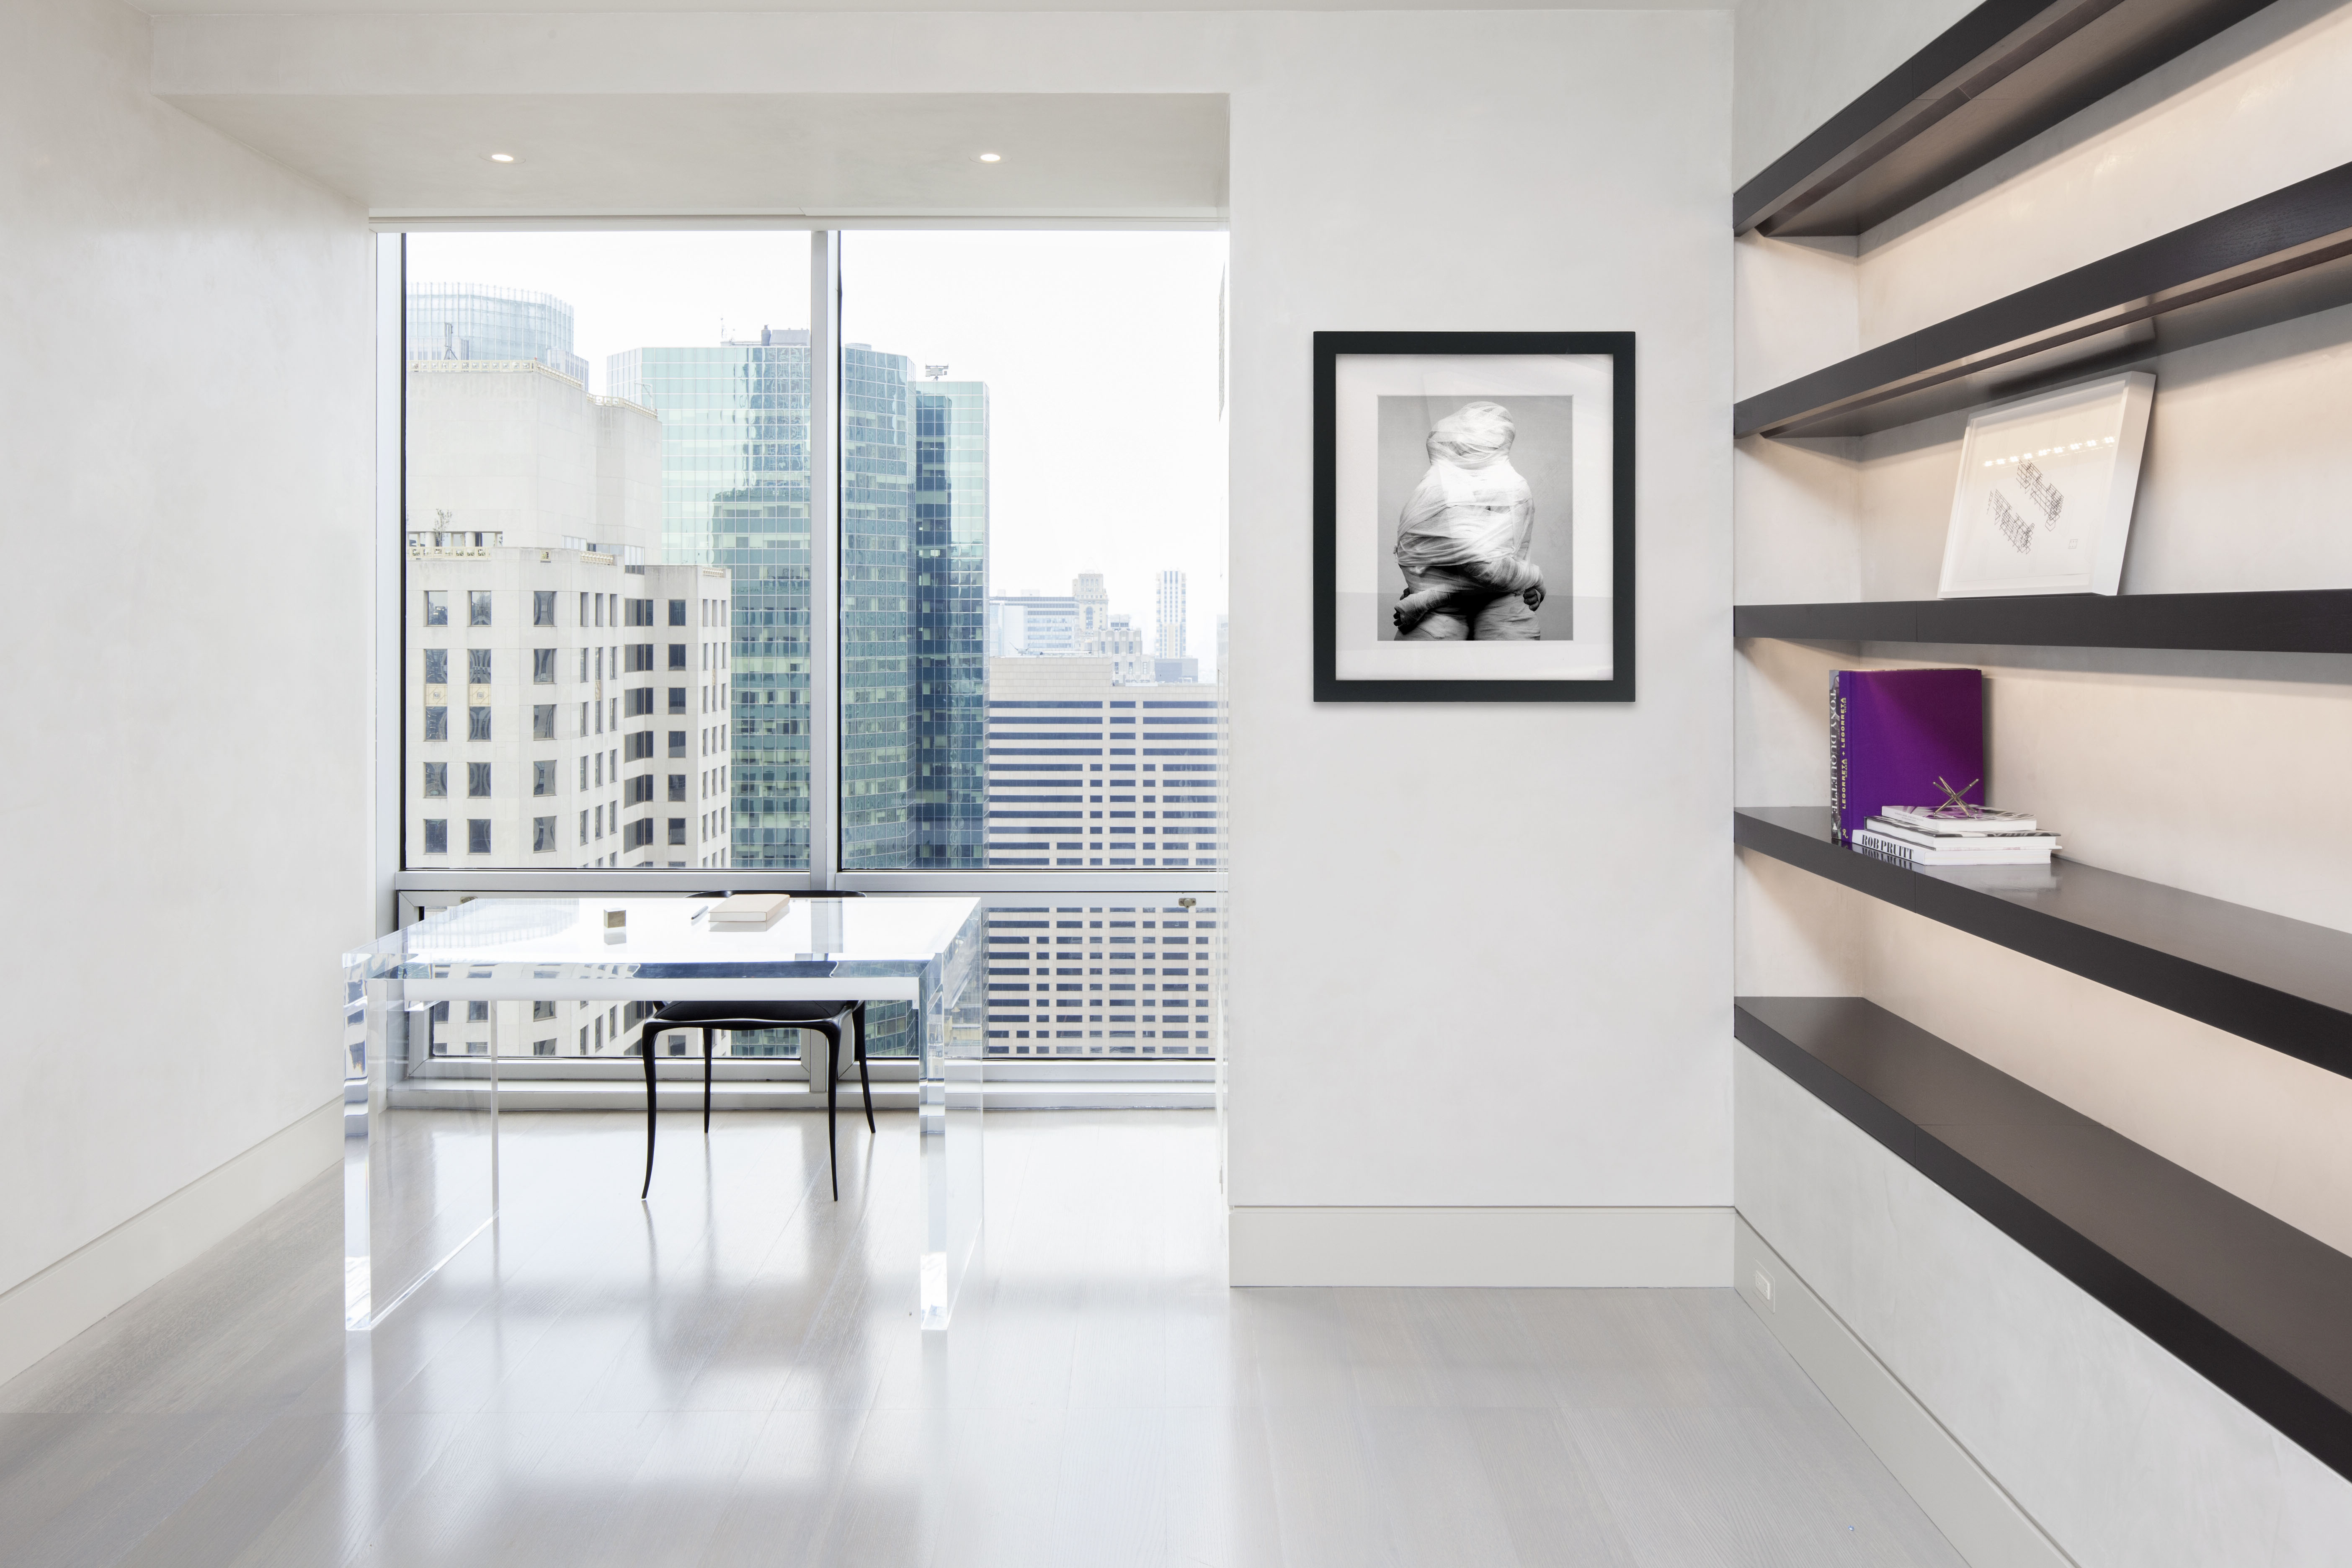 Olympic Tower apartment Interior in The Wall Street Journal Rafael